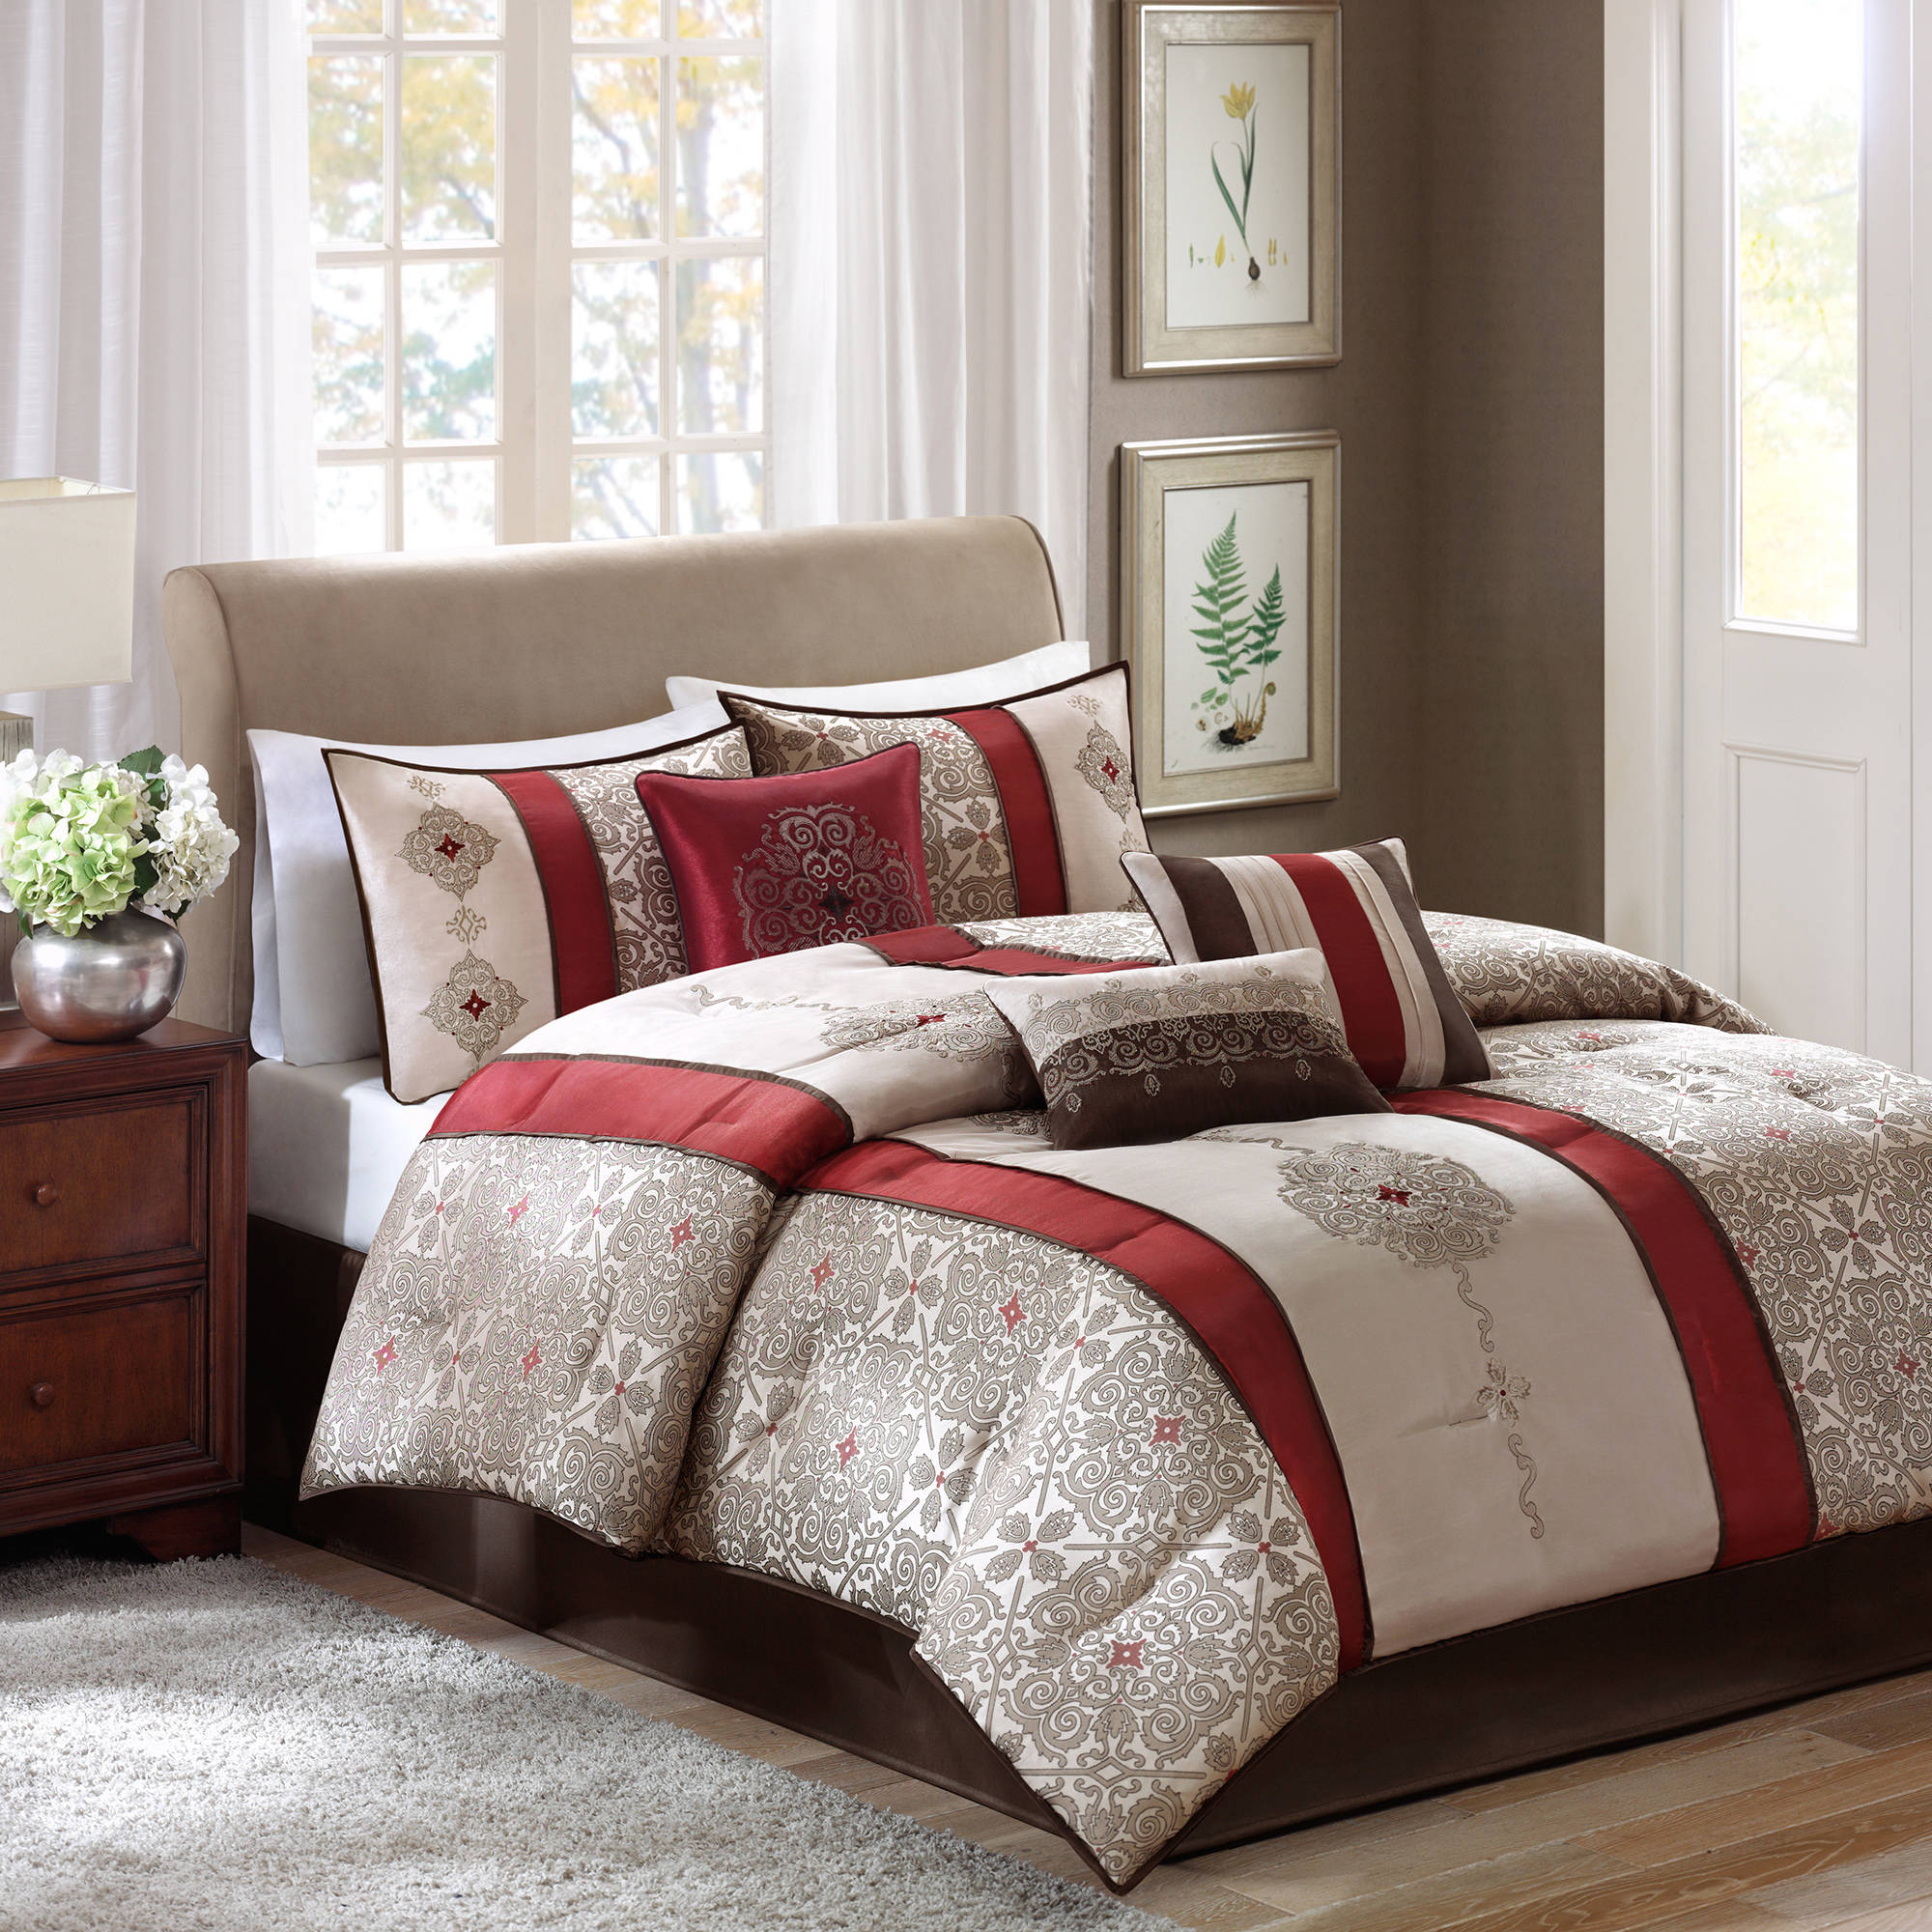 bath comforter product cotton sets red madison queen bedding georgia set park piece reversible twill